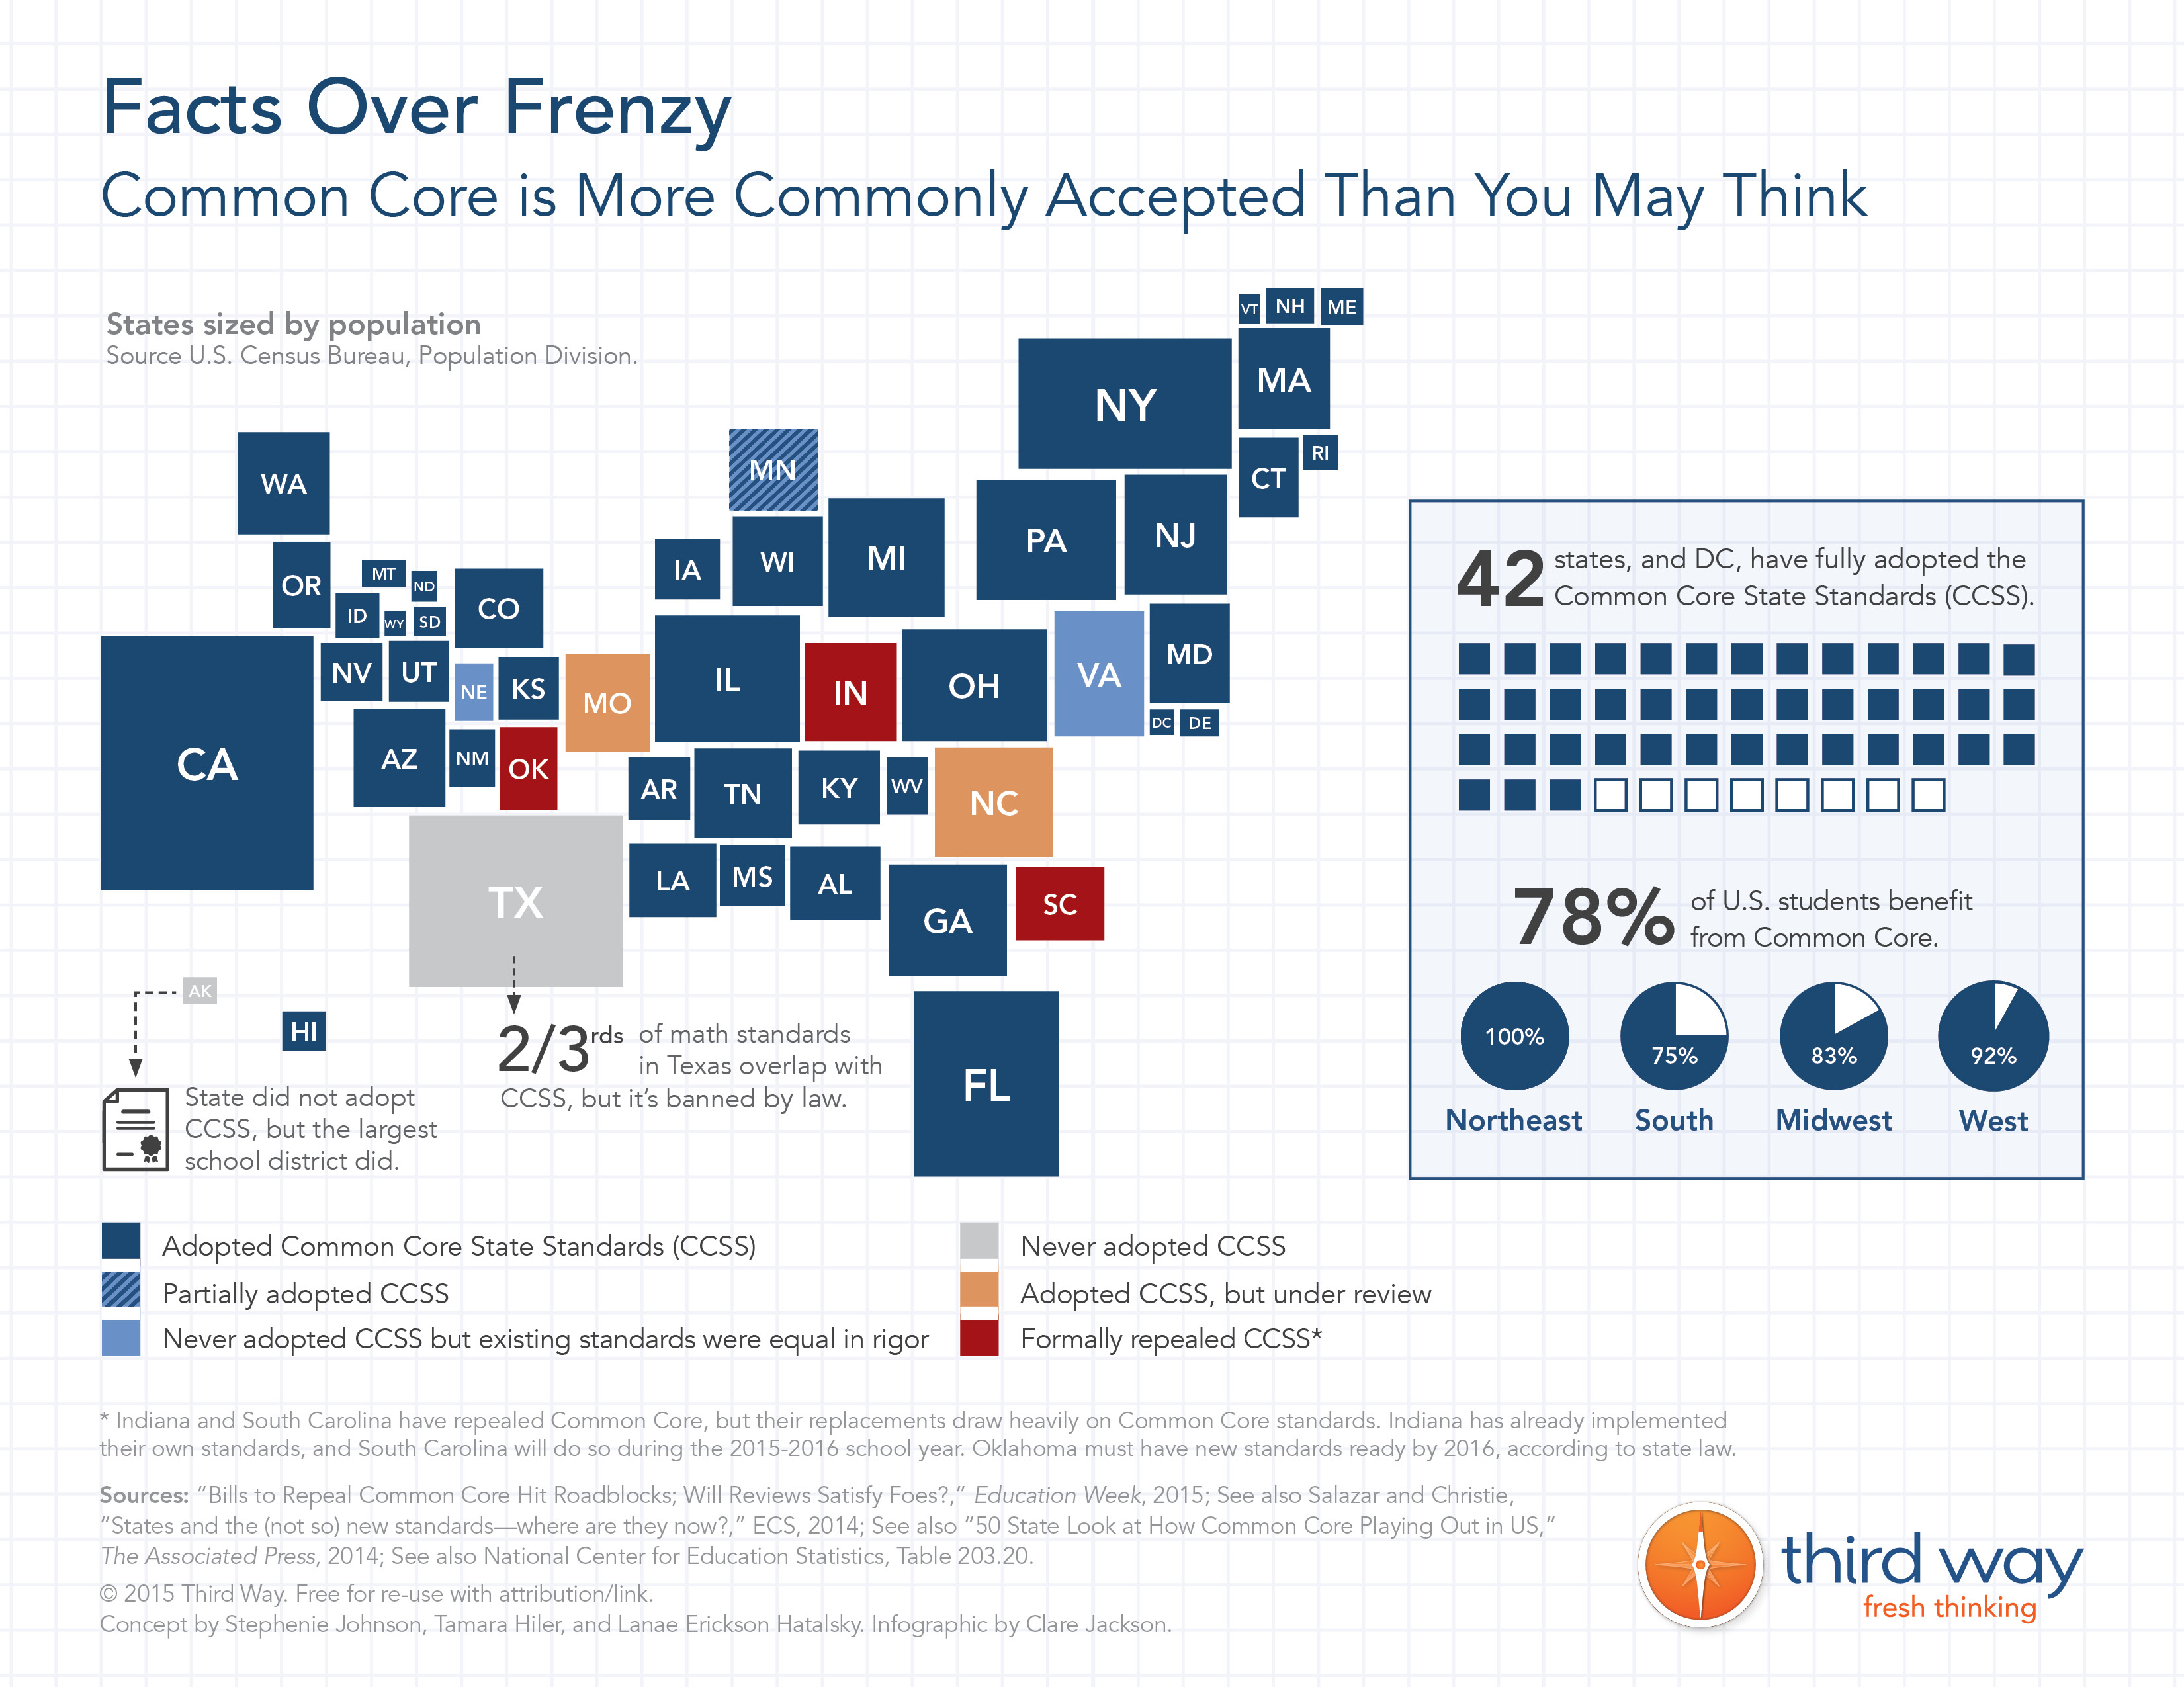 Facts Over Frenzy: Common Core is More Commonly Accepted Than You May Think